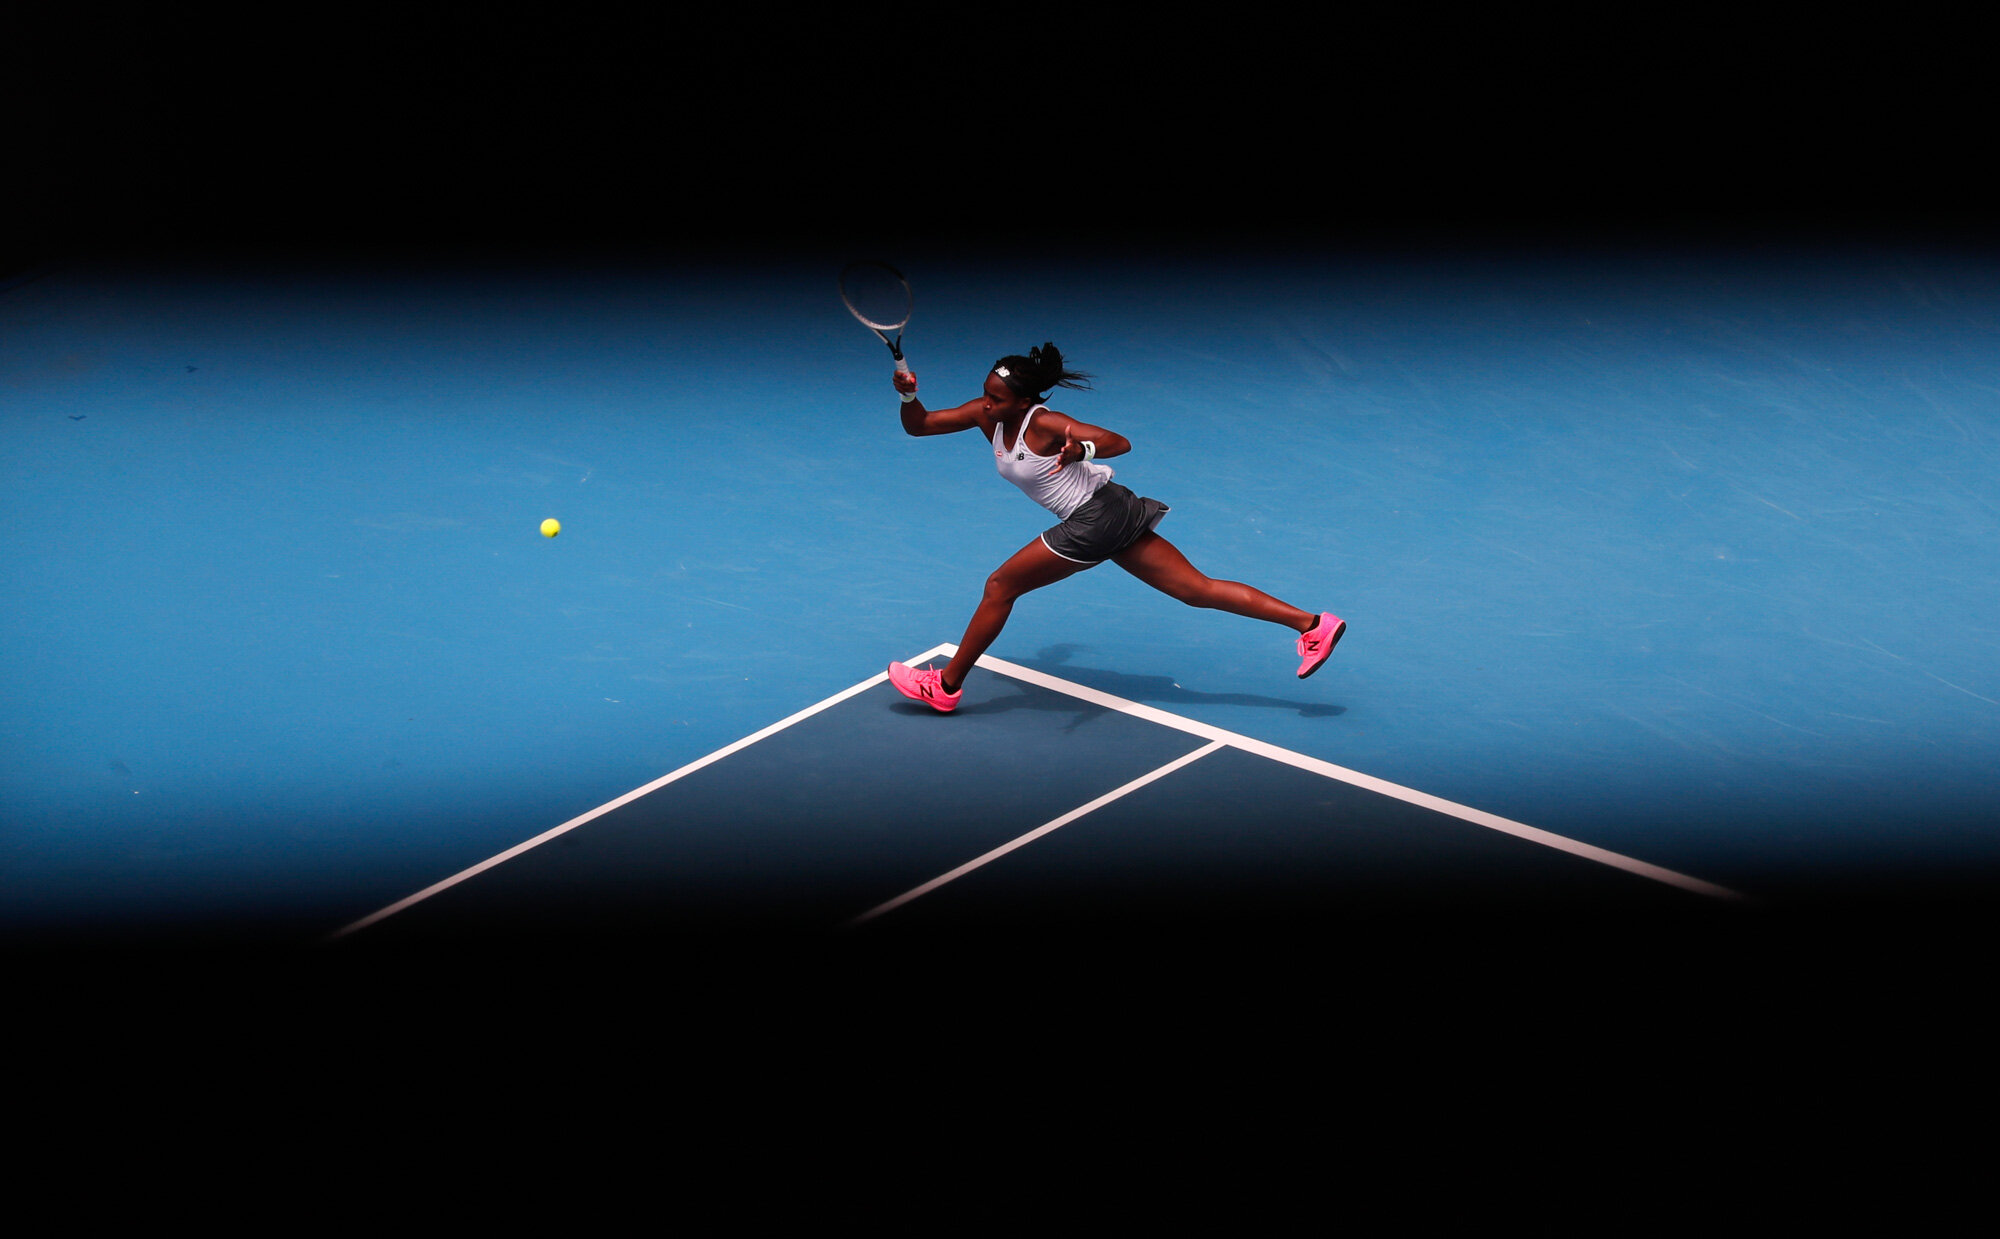 """Cori """"Coco"""" Gauff of the U.S. makes a forehand return to Romania's Sorana Cirstea during their second round singles match at the Australian Open tennis championship in Melbourne, Australia, on Jan. 22, 2020. (AP Photo/Lee Jin-man)"""